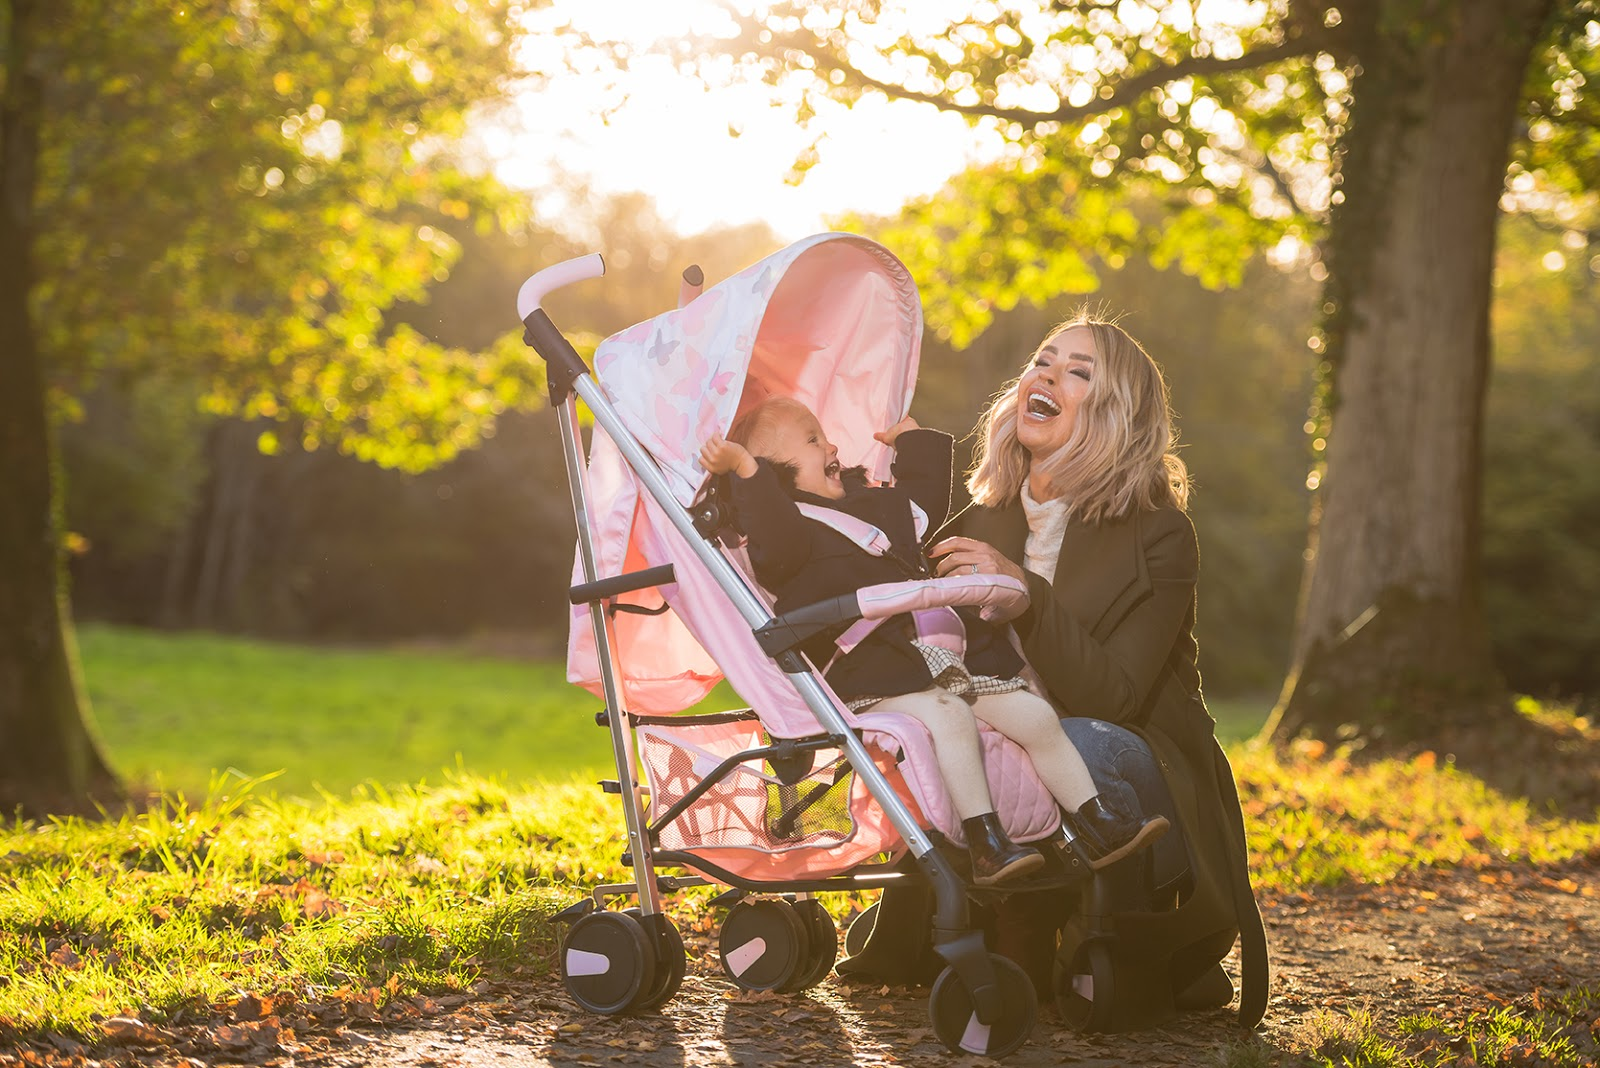 katie piper laughing next to a light pink buggy